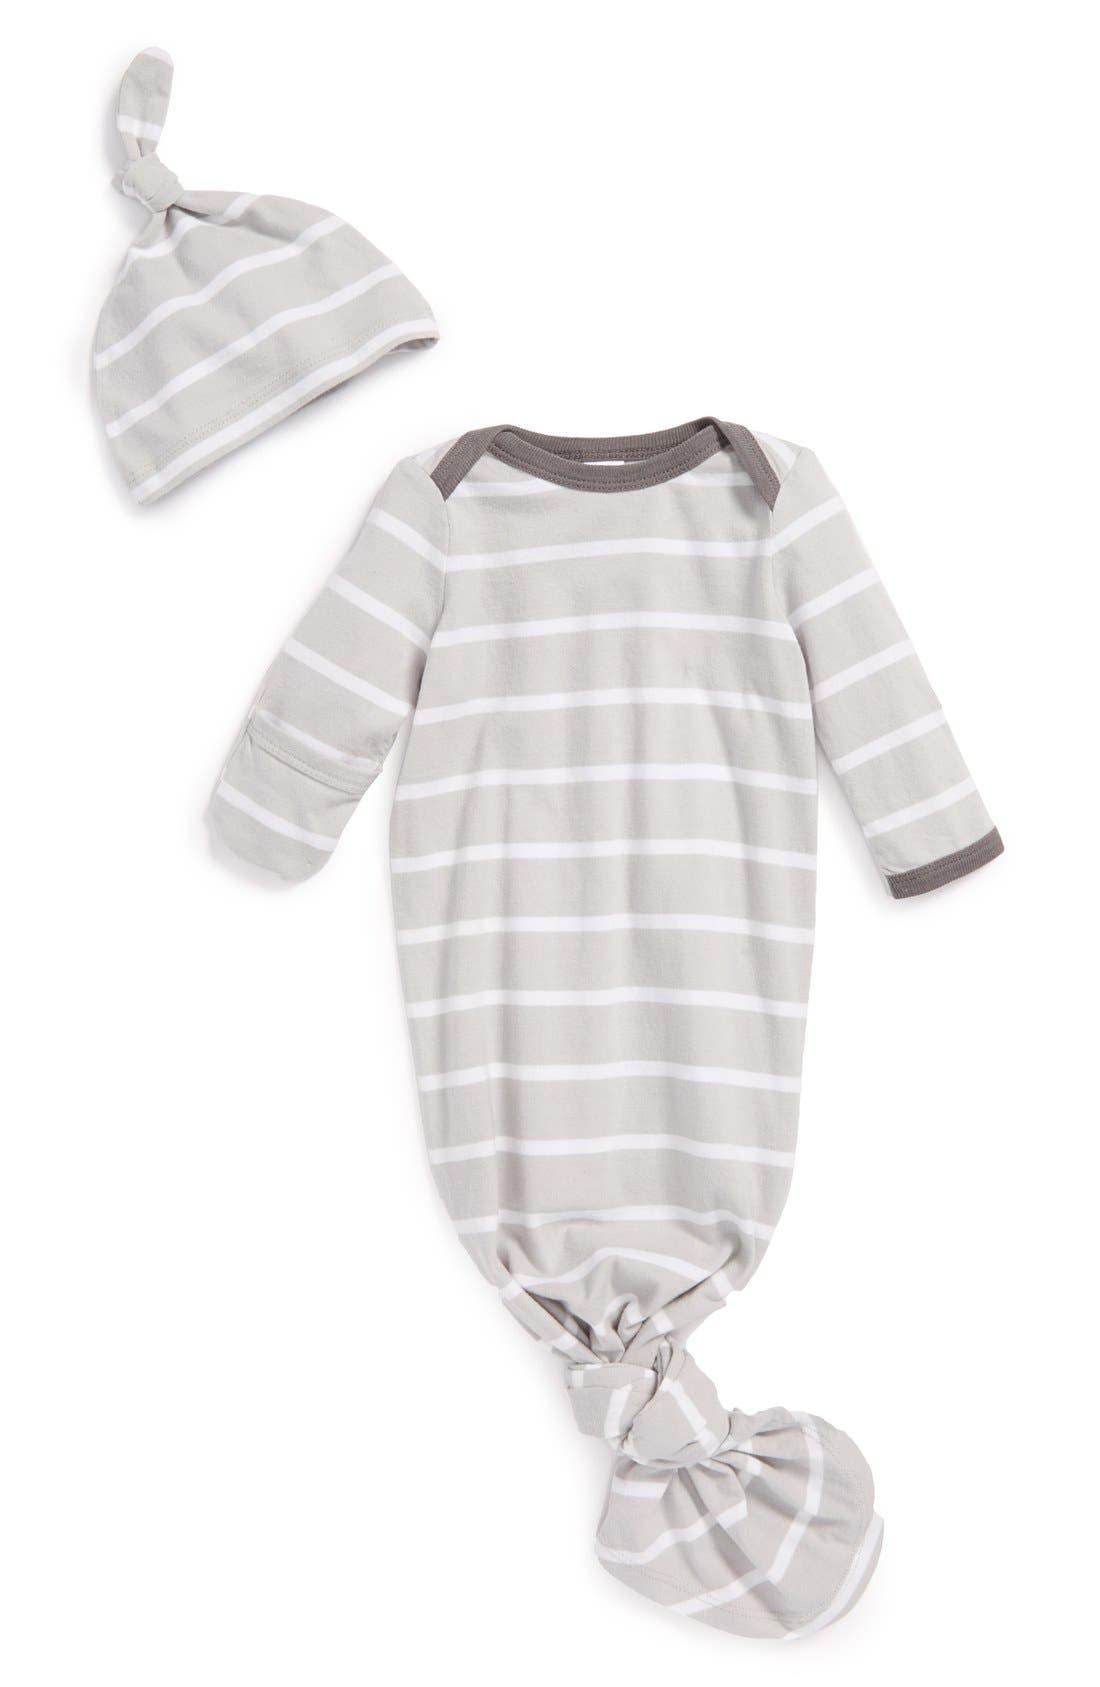 Main Image - Nordstrom Cotton Baby Gown & Hat (Baby Girls)